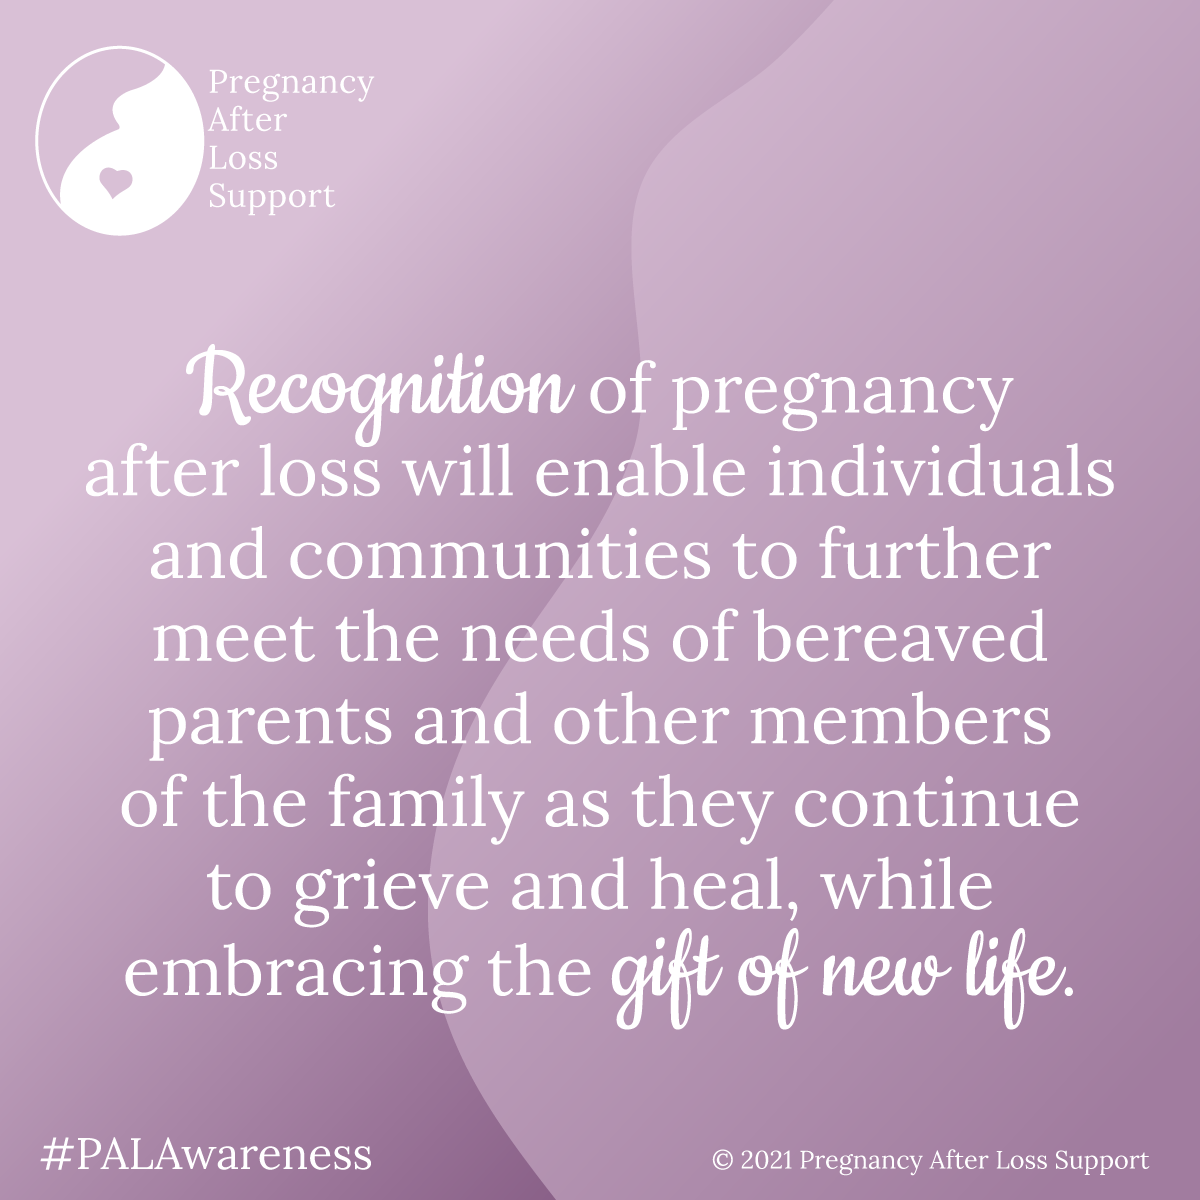 Recognition of pregnancy after loss will enable individuals and communities to further meet the needs of bereaved parents